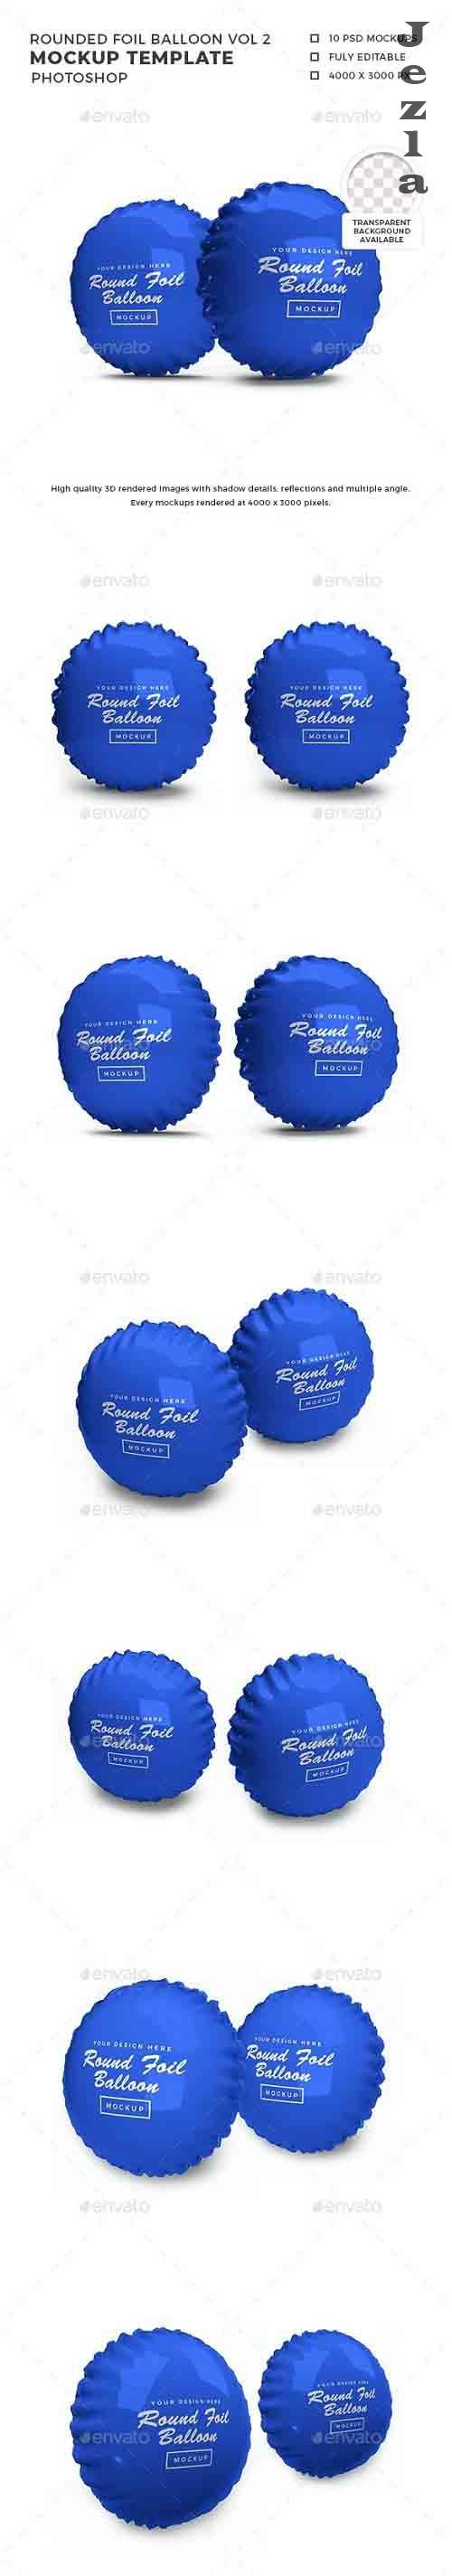 Rounded Foil Balloon 3D Mockup Template Vol 2 - 32557867